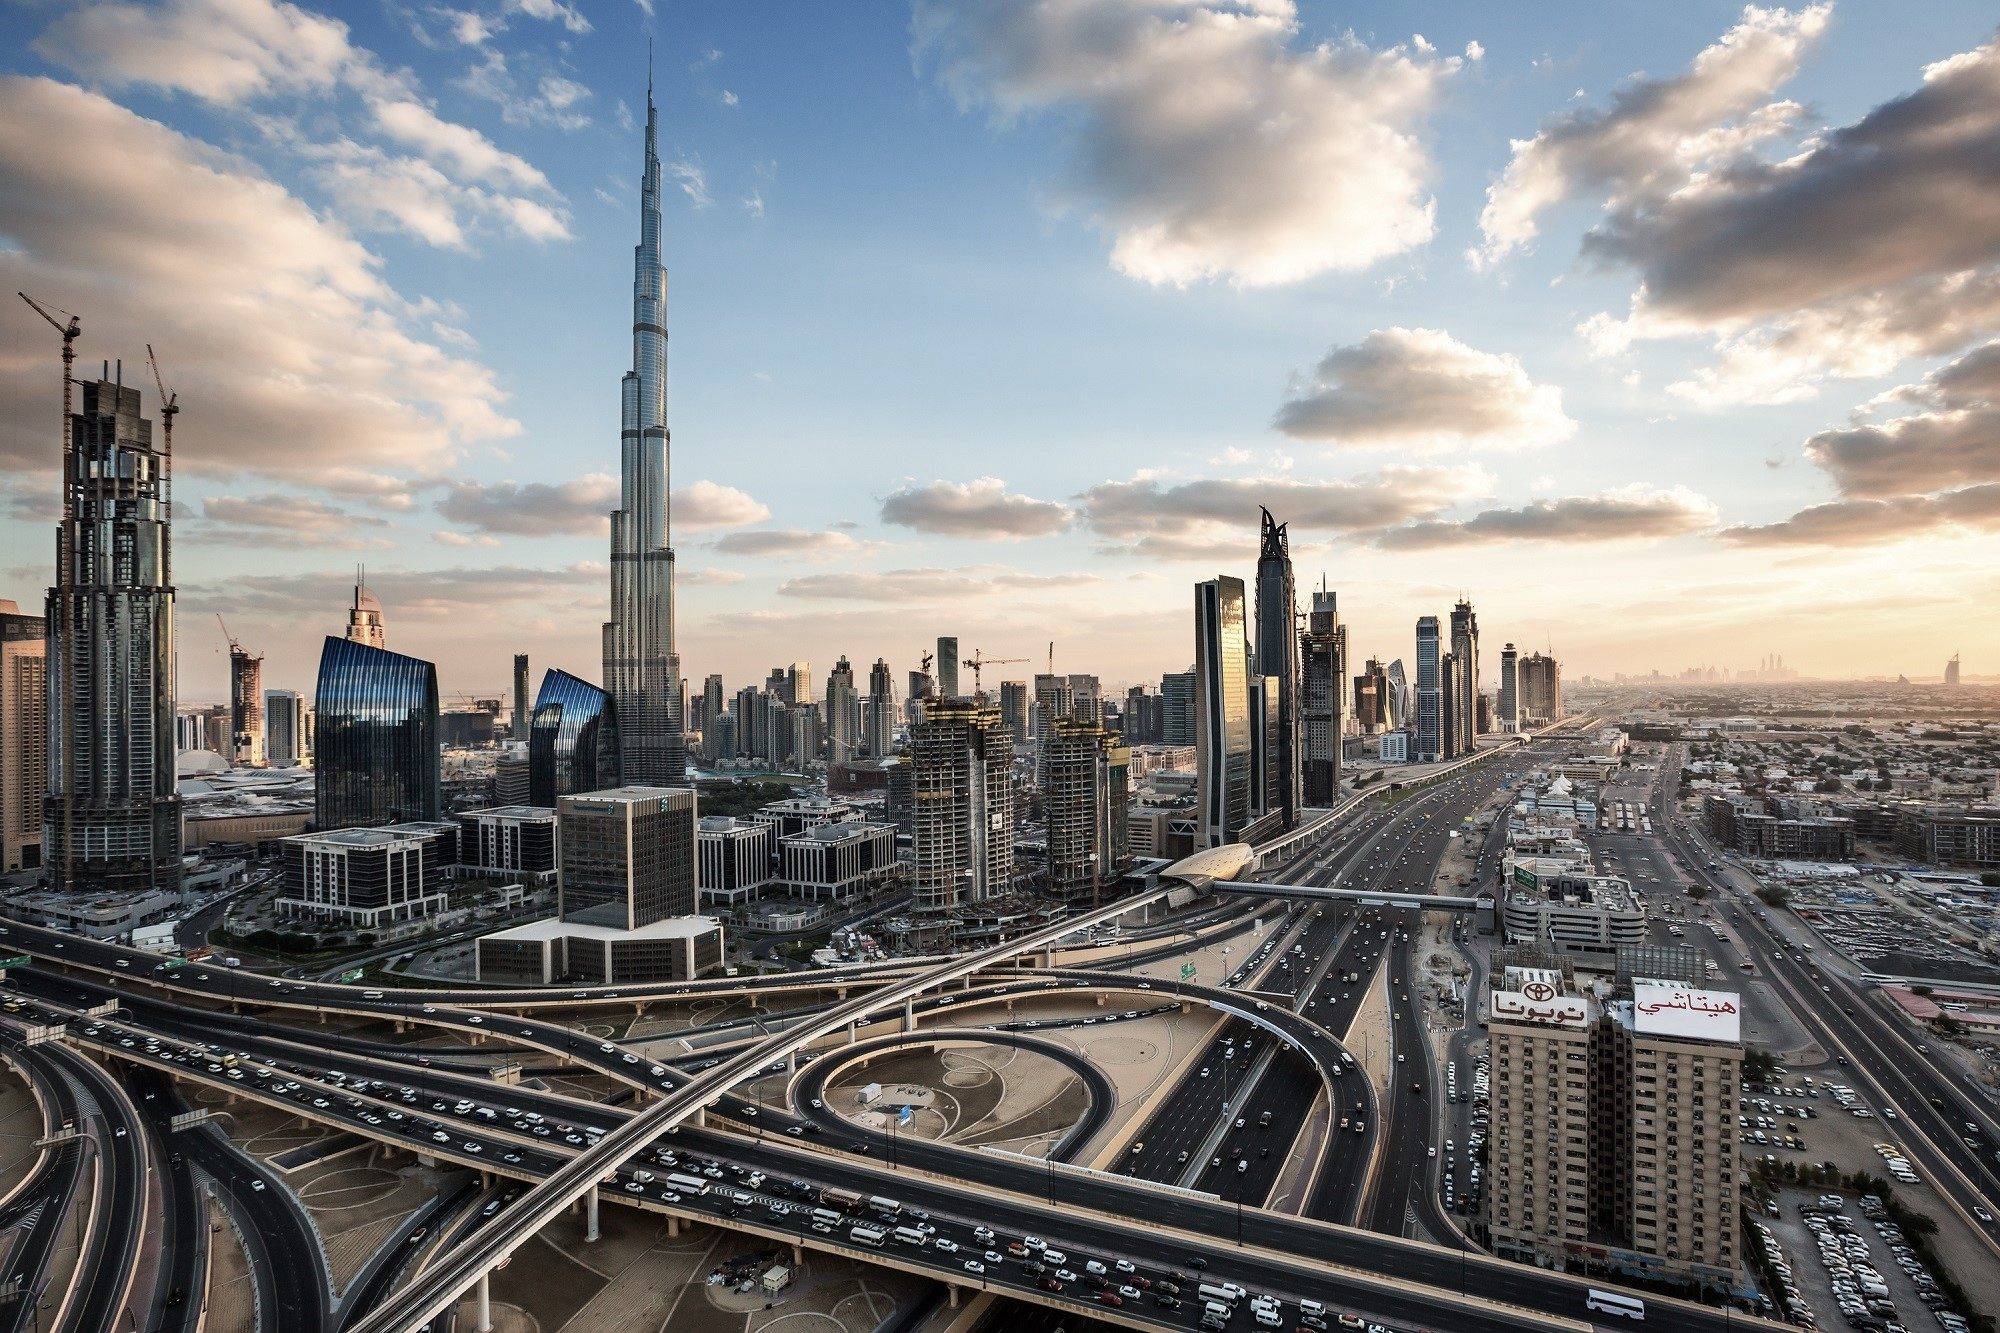 Big exits seem to distract us from the gaps in MENA's venture capital and entrepreneurial ecosystem